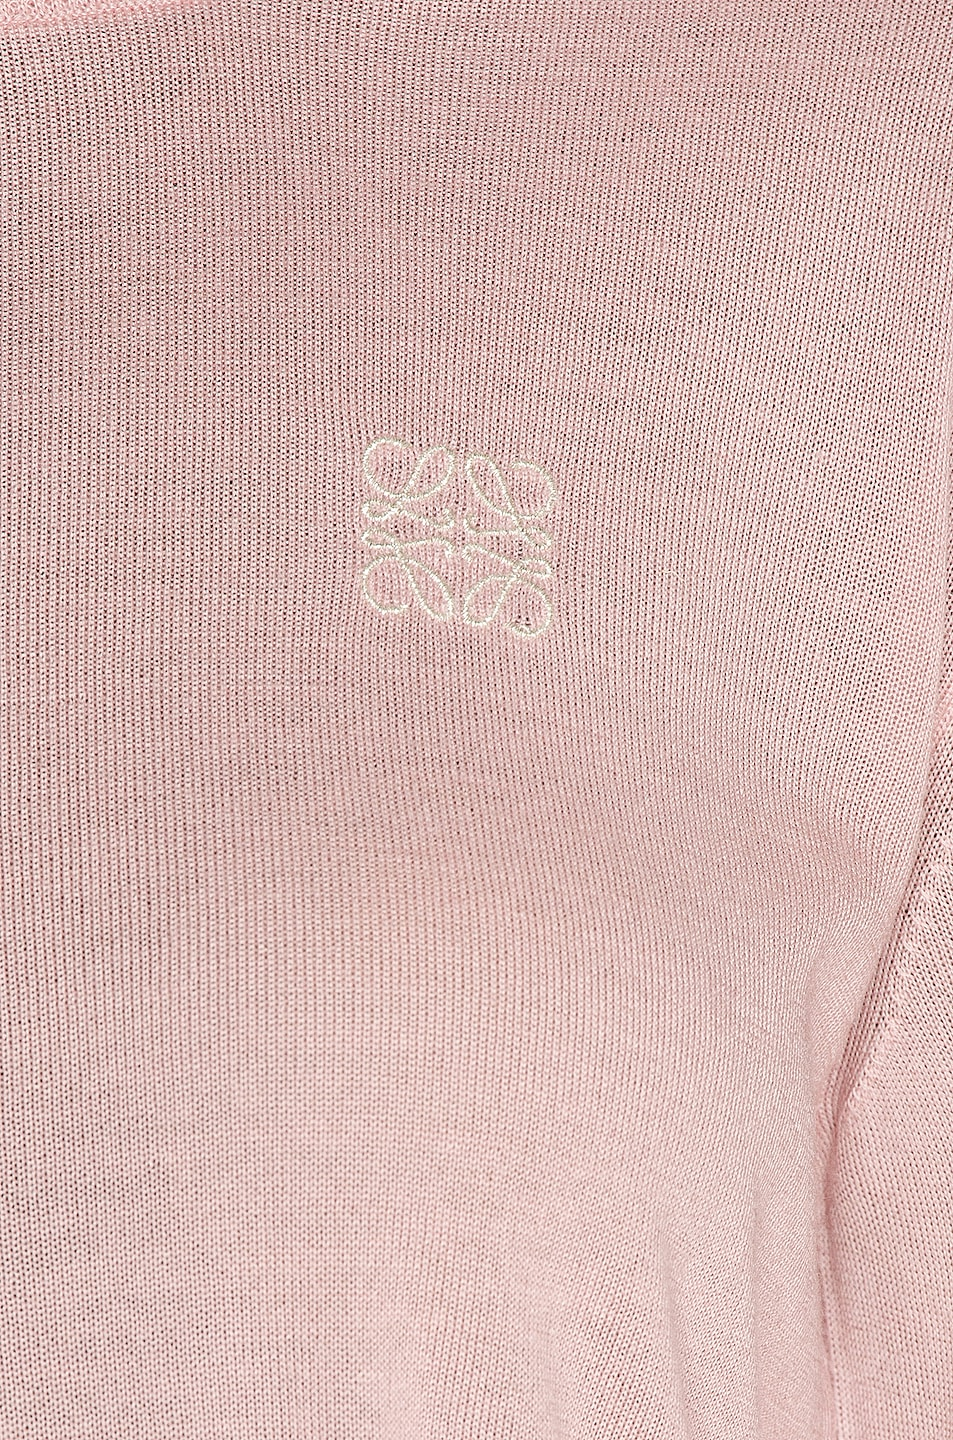 Image 6 of Loewe Anagram Sweater in Baby Pink